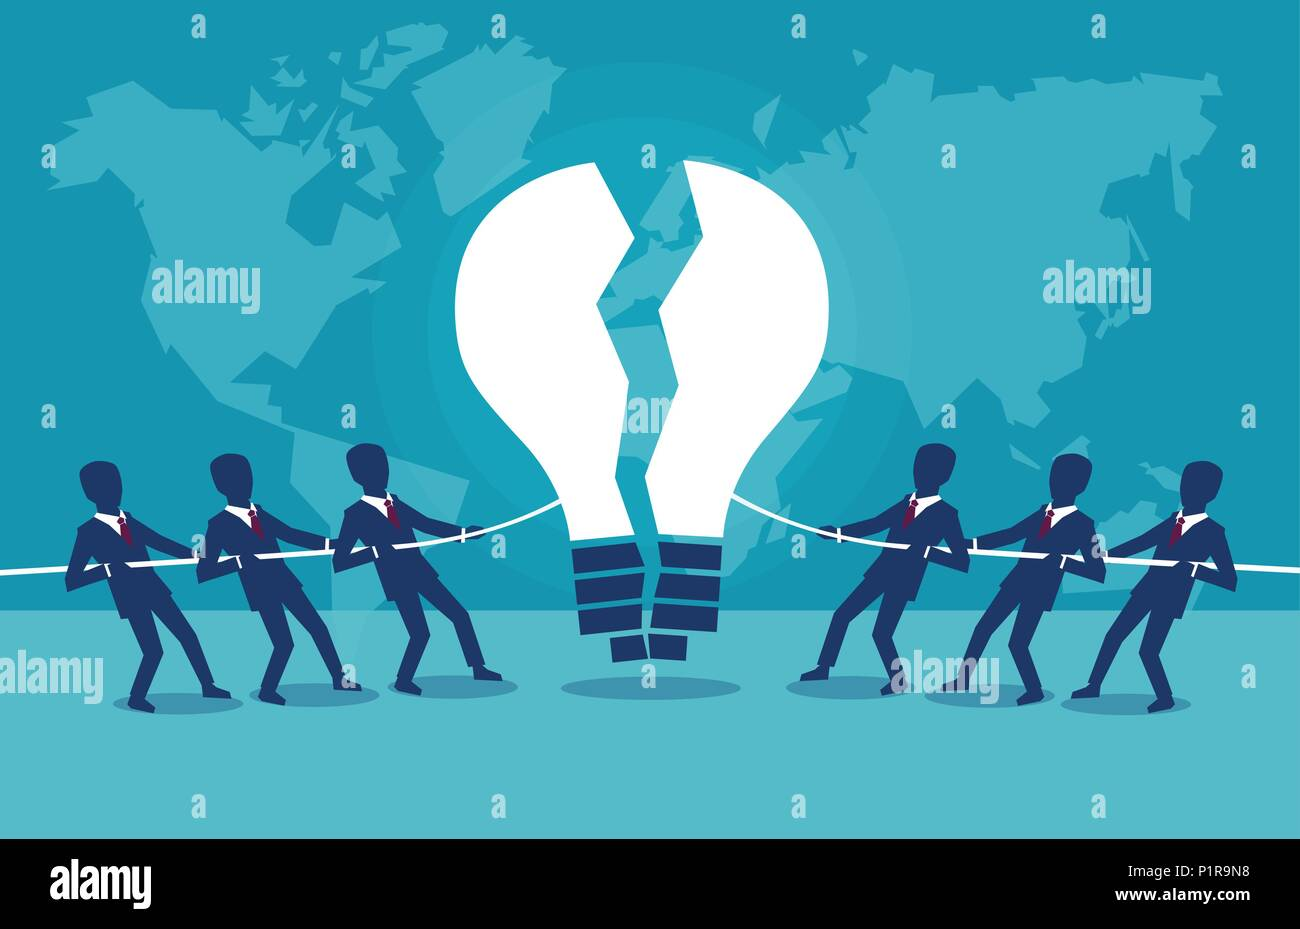 Vector concept illustration of rival business groups competing for intellectual idea. - Stock Image